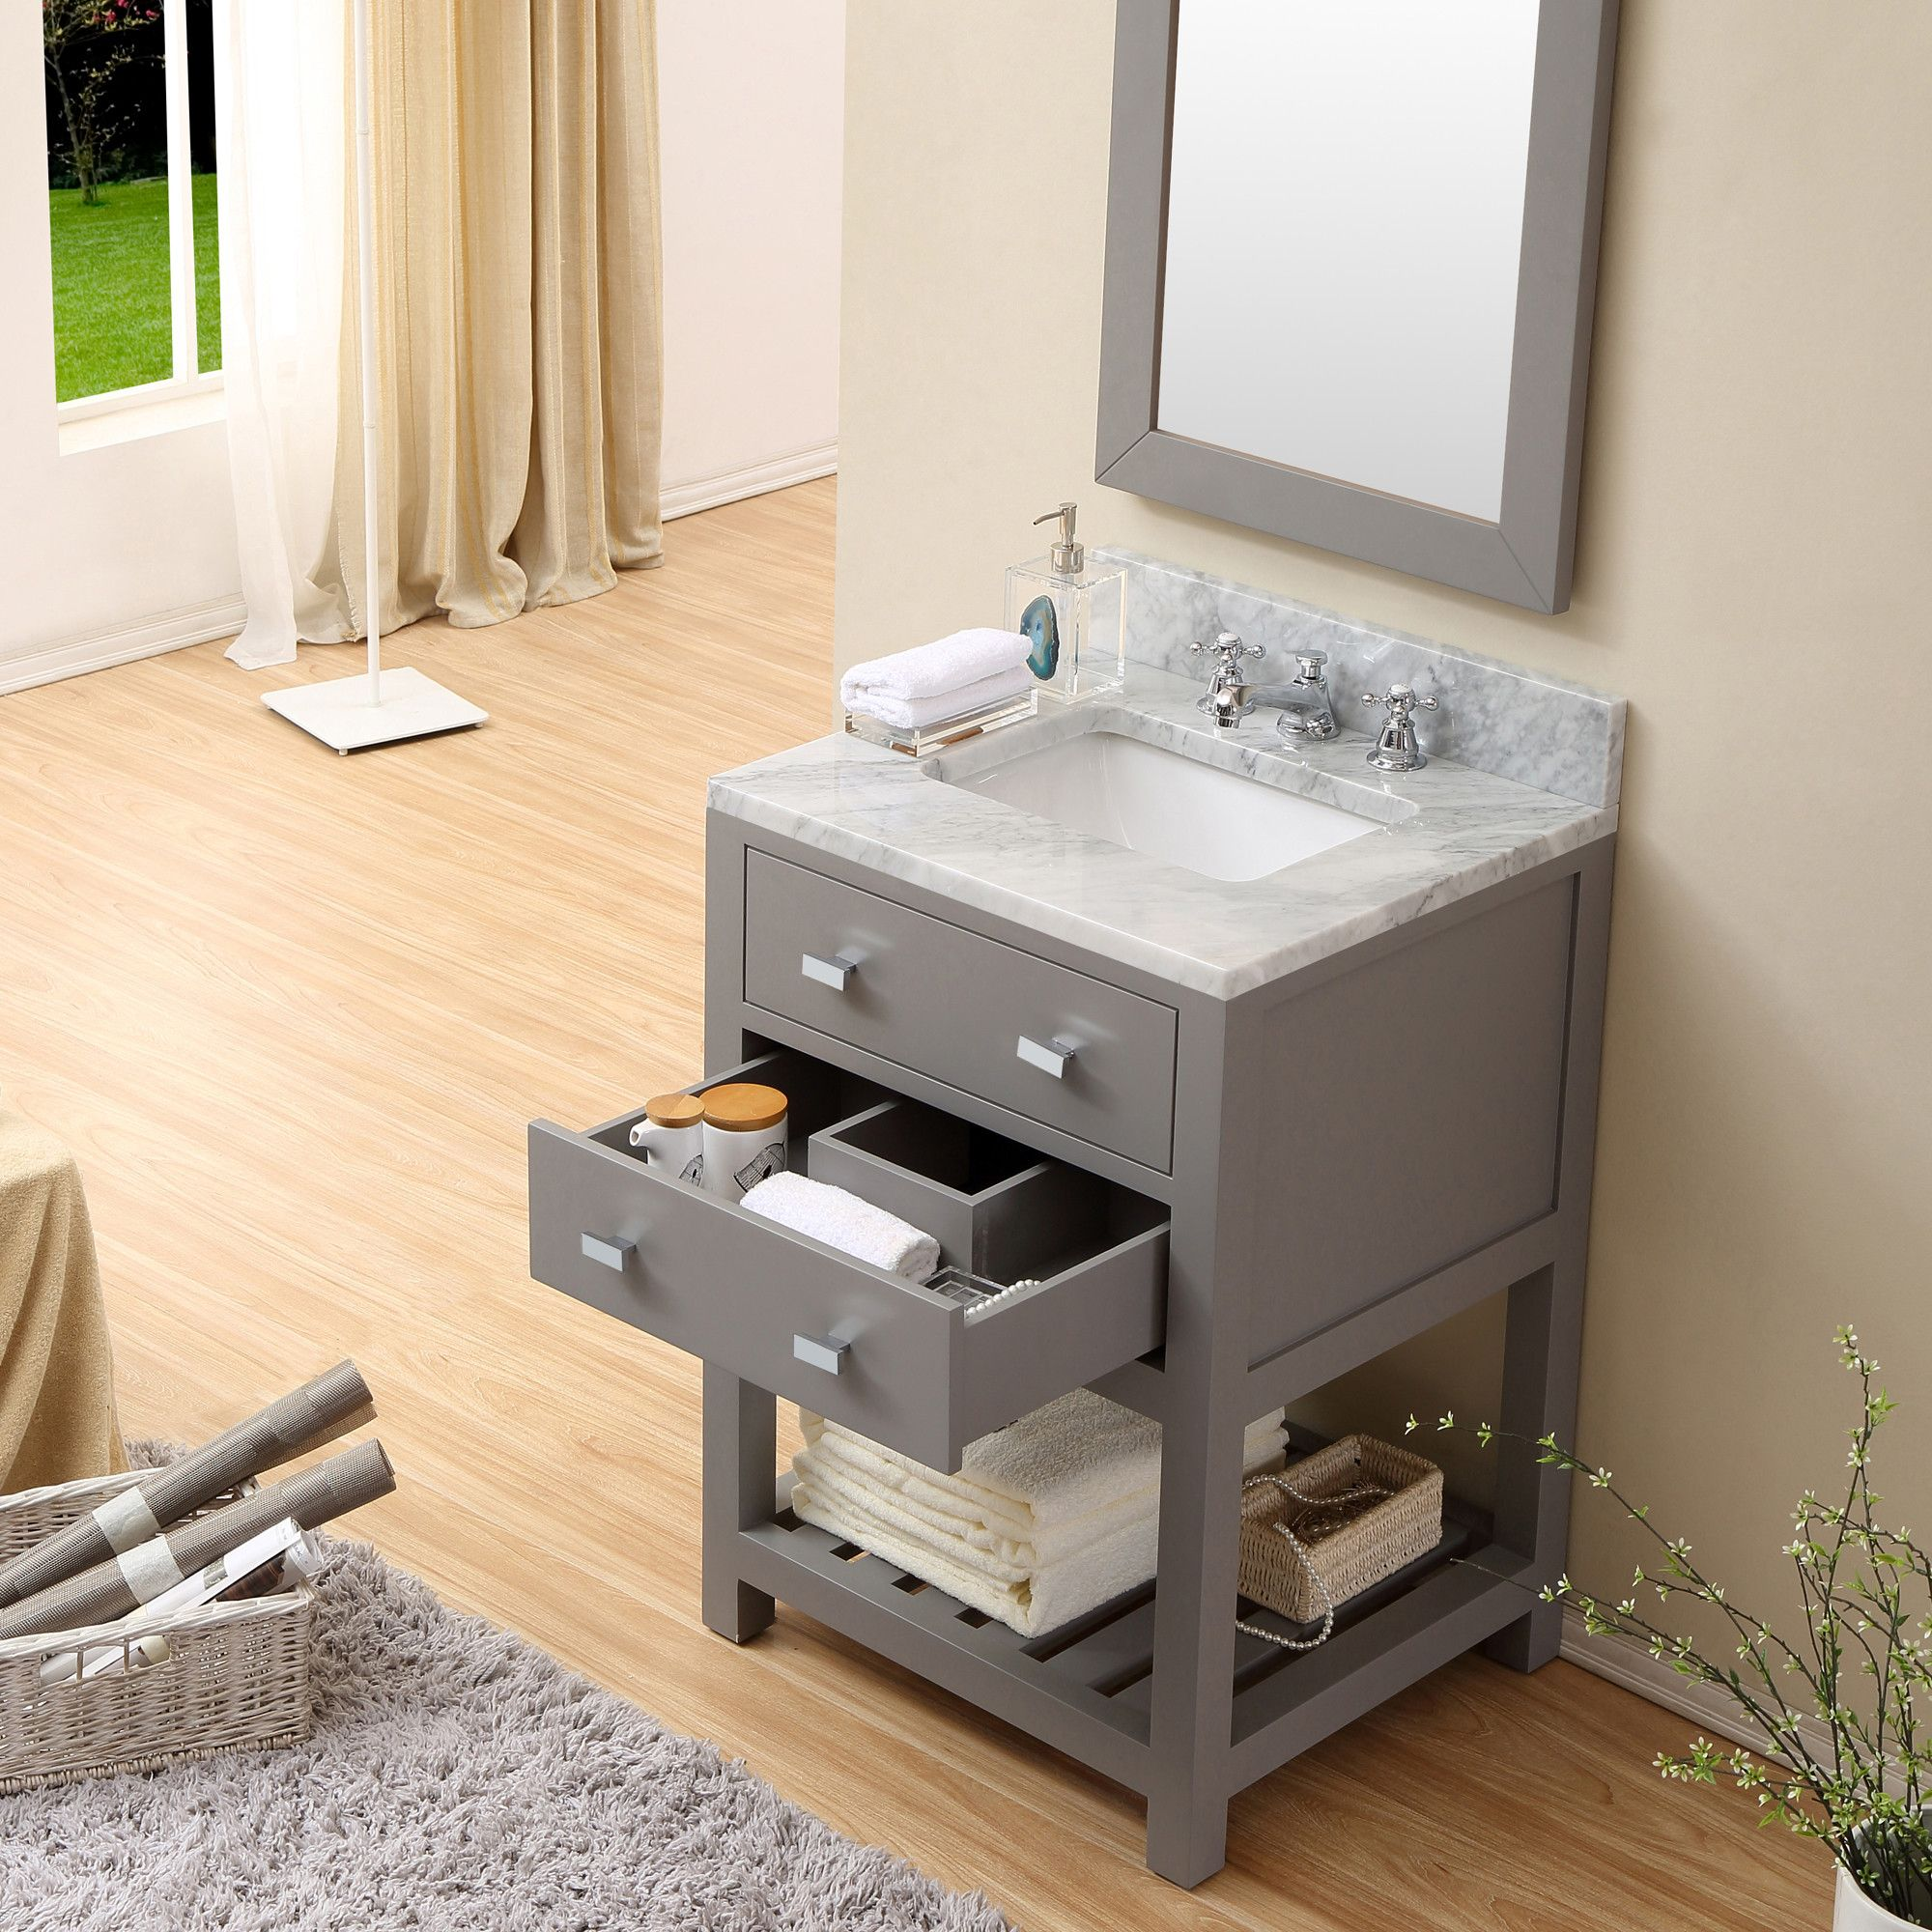 24 Inch Bathroom Vanity And Sink cadale 24 inch gay finish single sink bathroom vanity | tiny